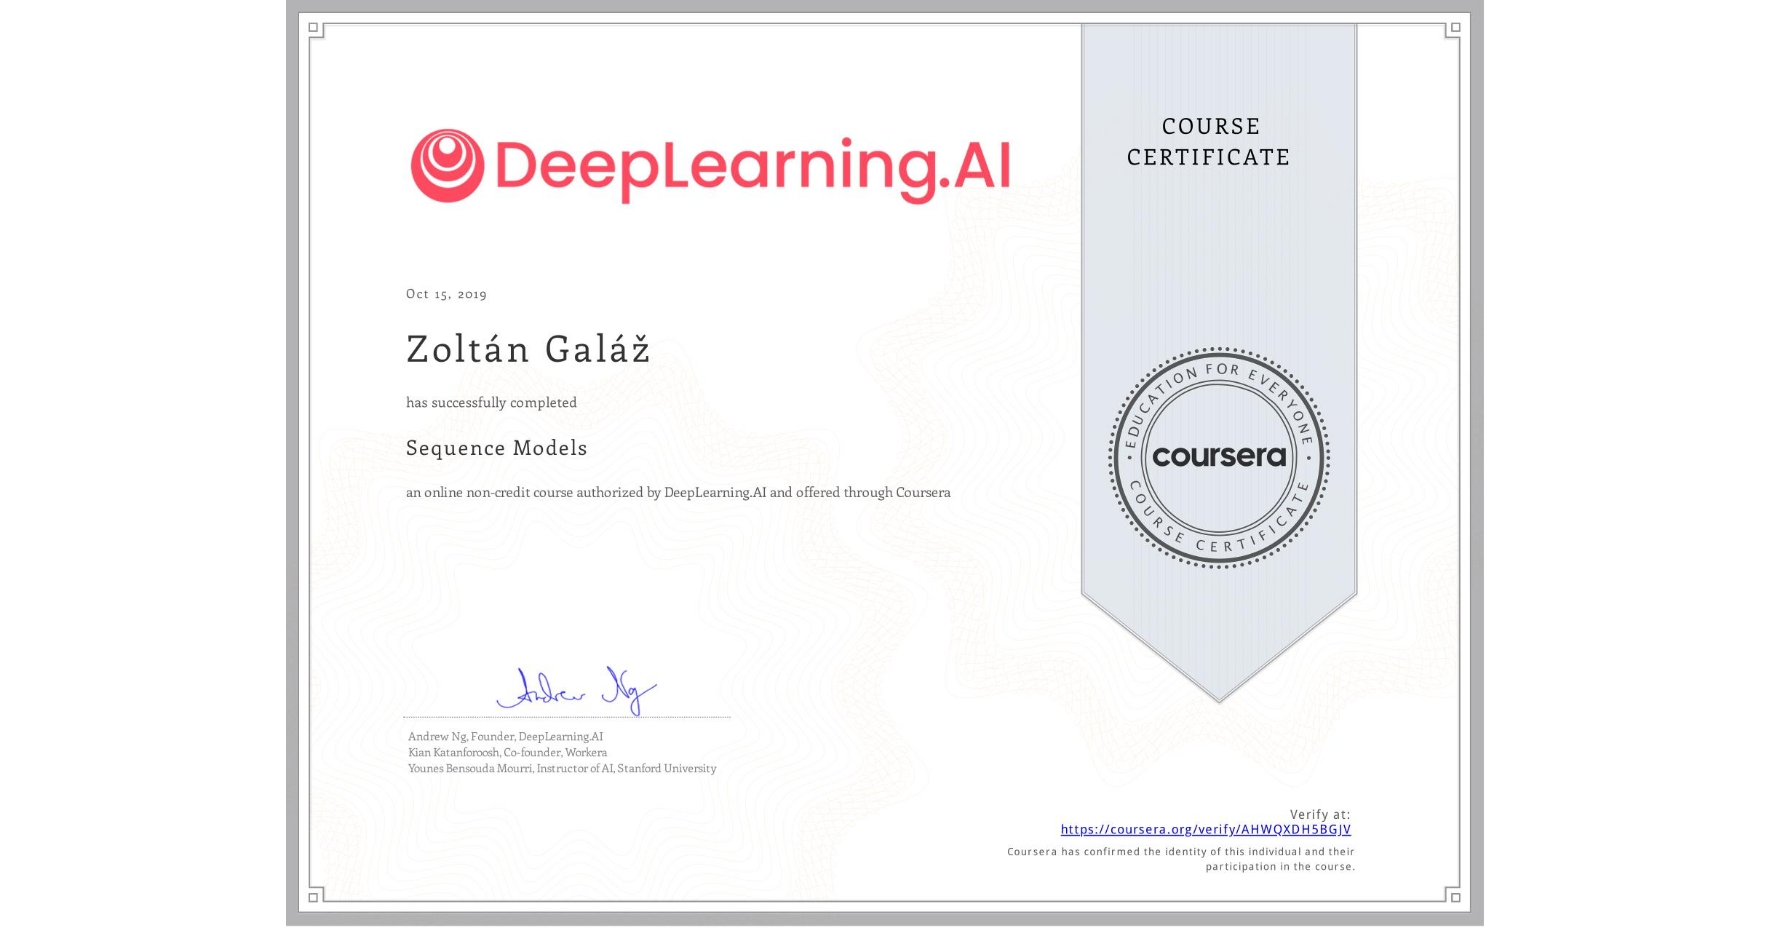 View certificate for Zoltán Galáž, Sequence Models, an online non-credit course authorized by DeepLearning.AI and offered through Coursera